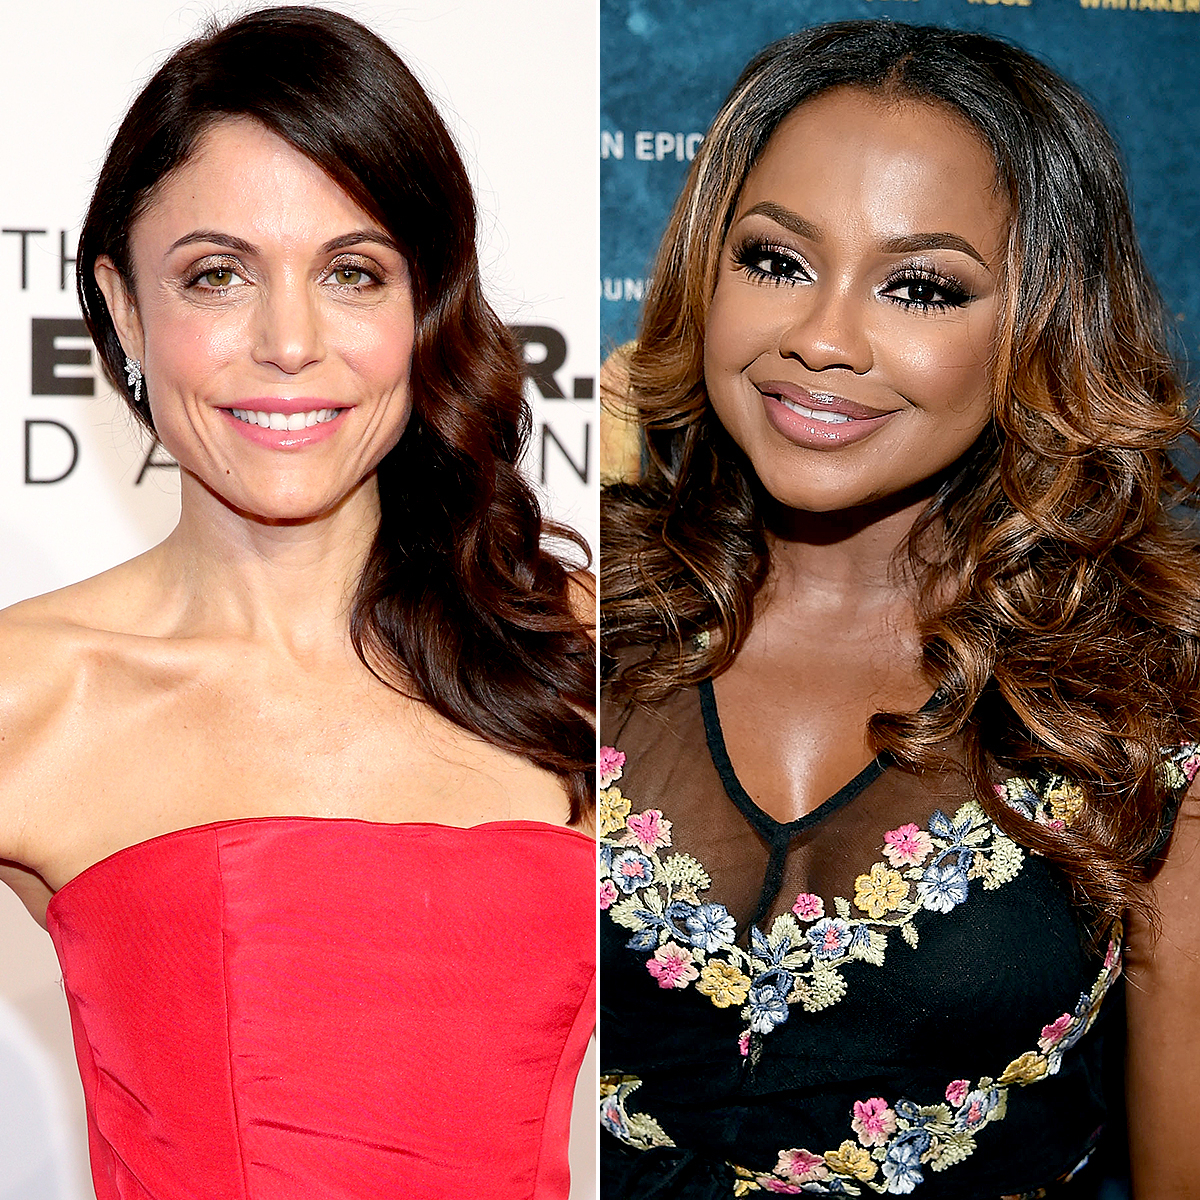 Bethenny Frankel and Phaedra Parks